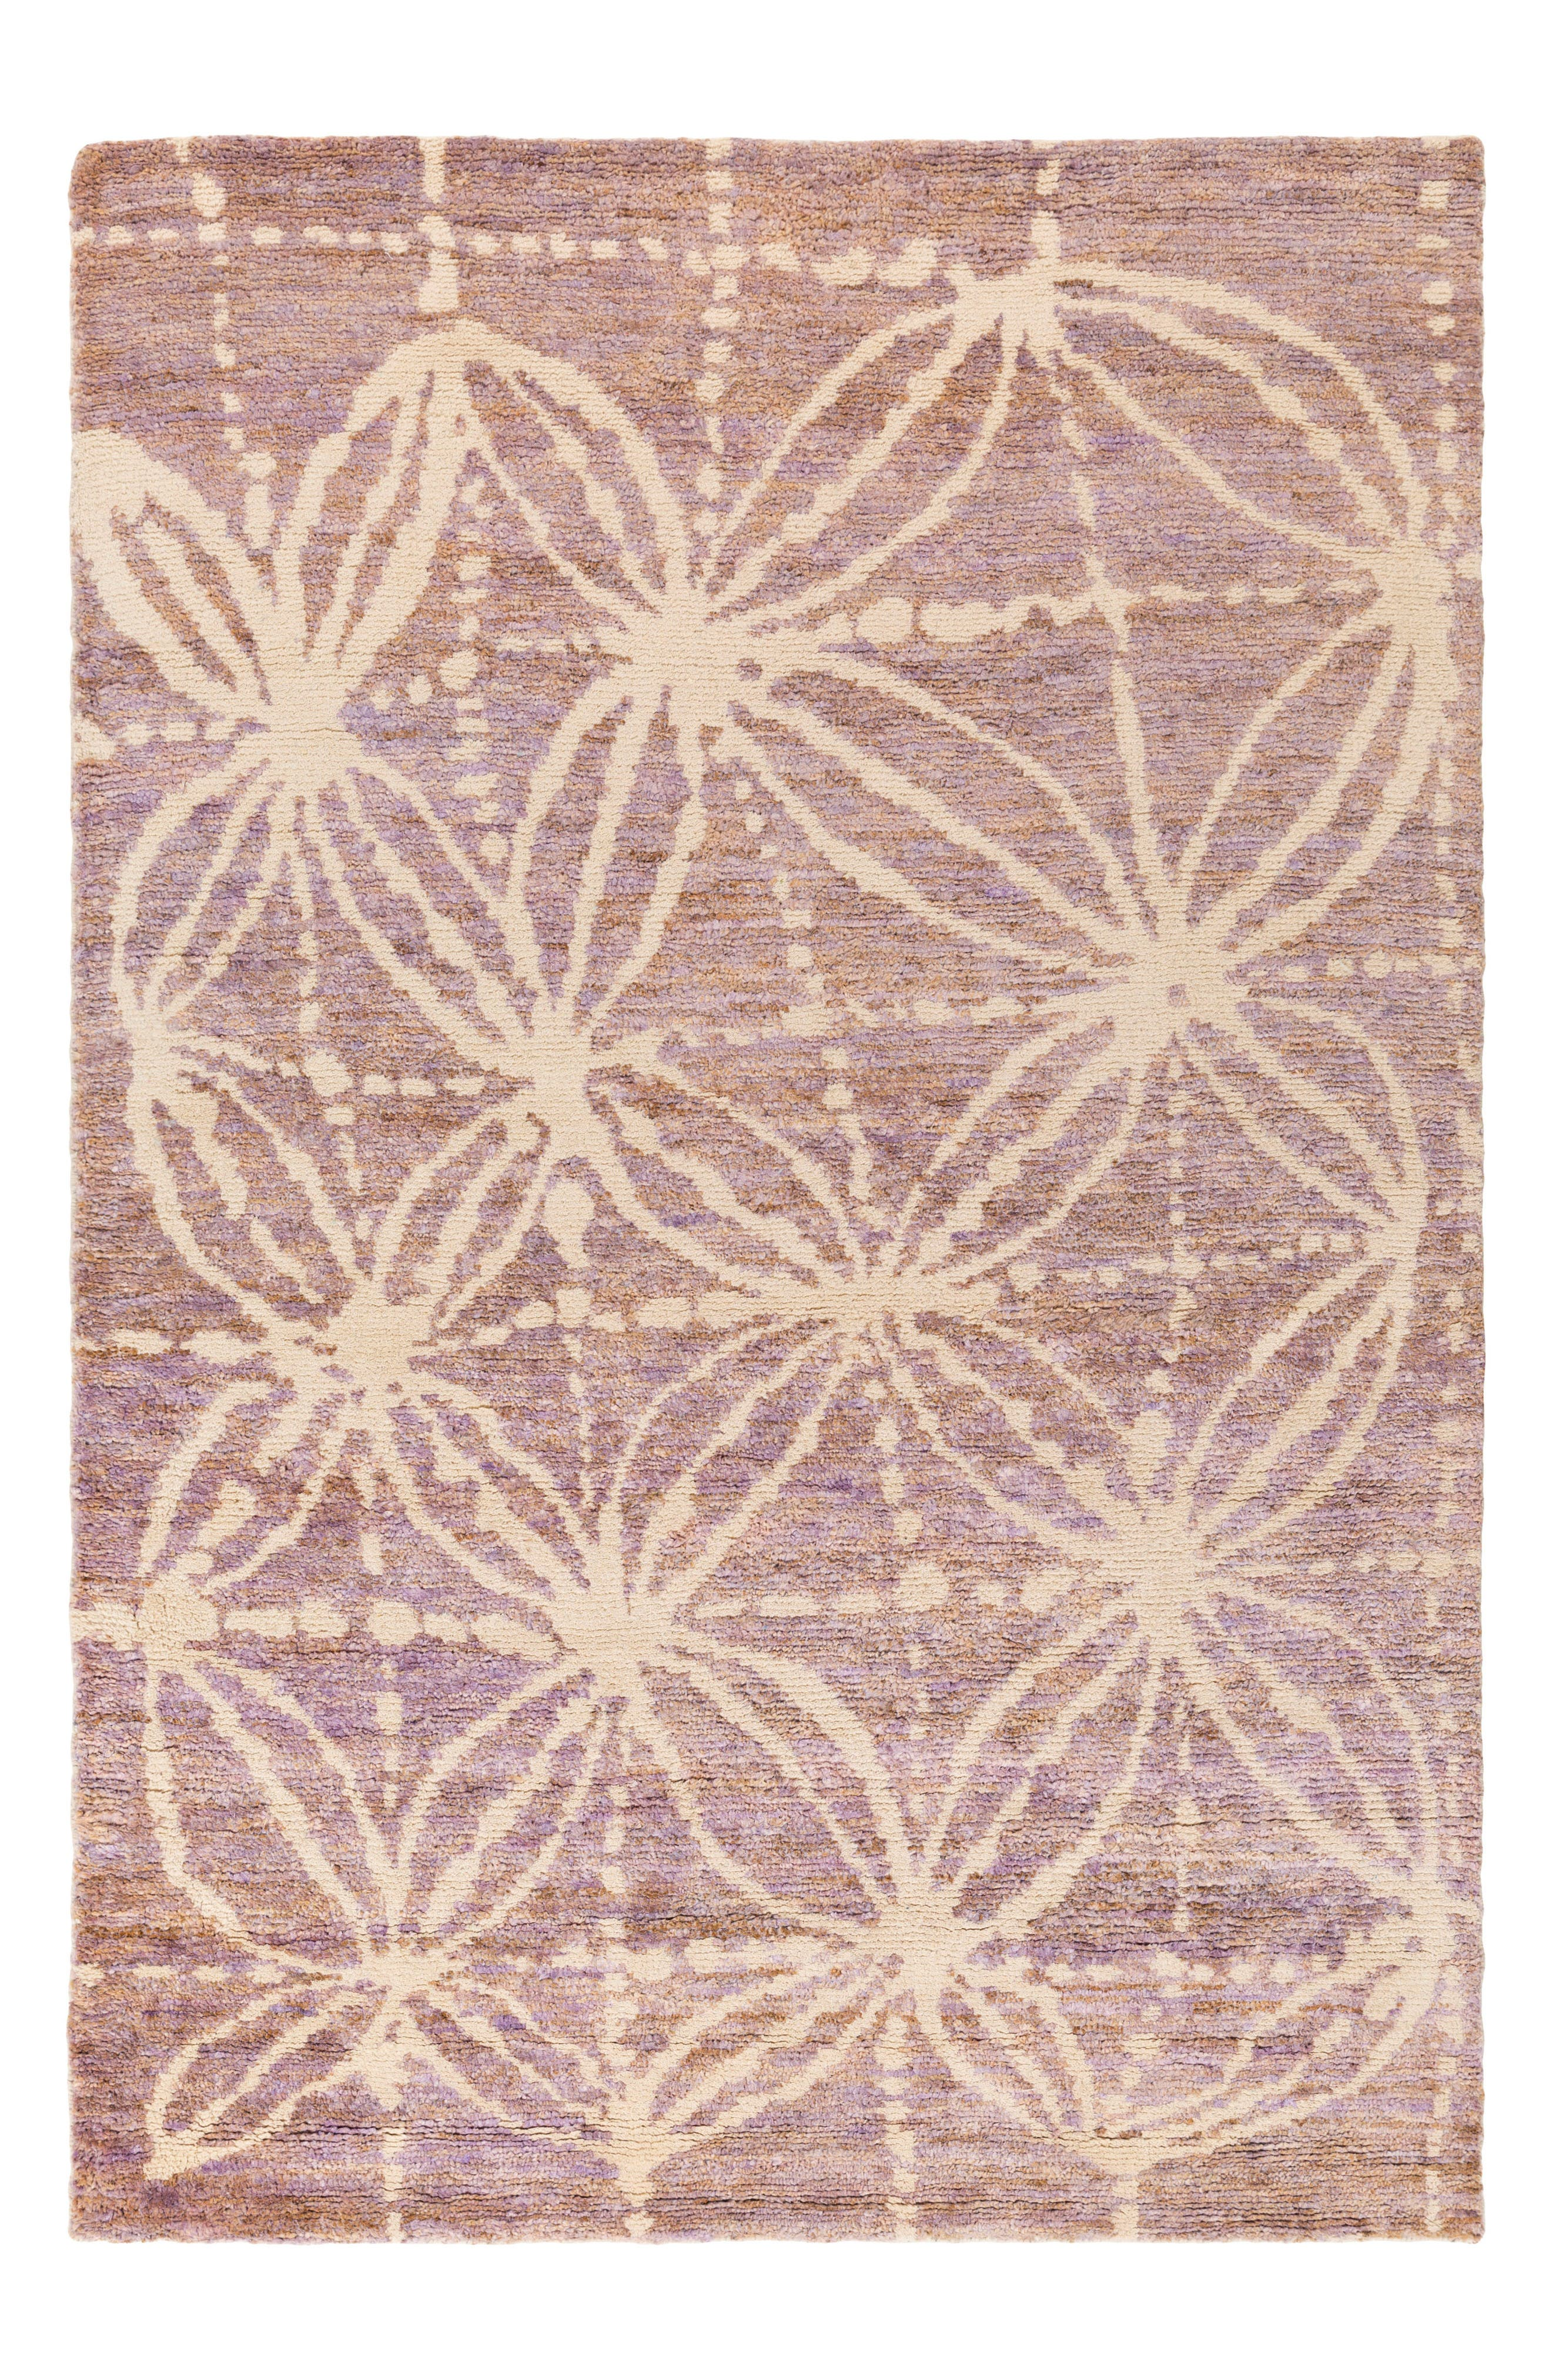 Orinocco Area Rug,                         Main,                         color, Purple